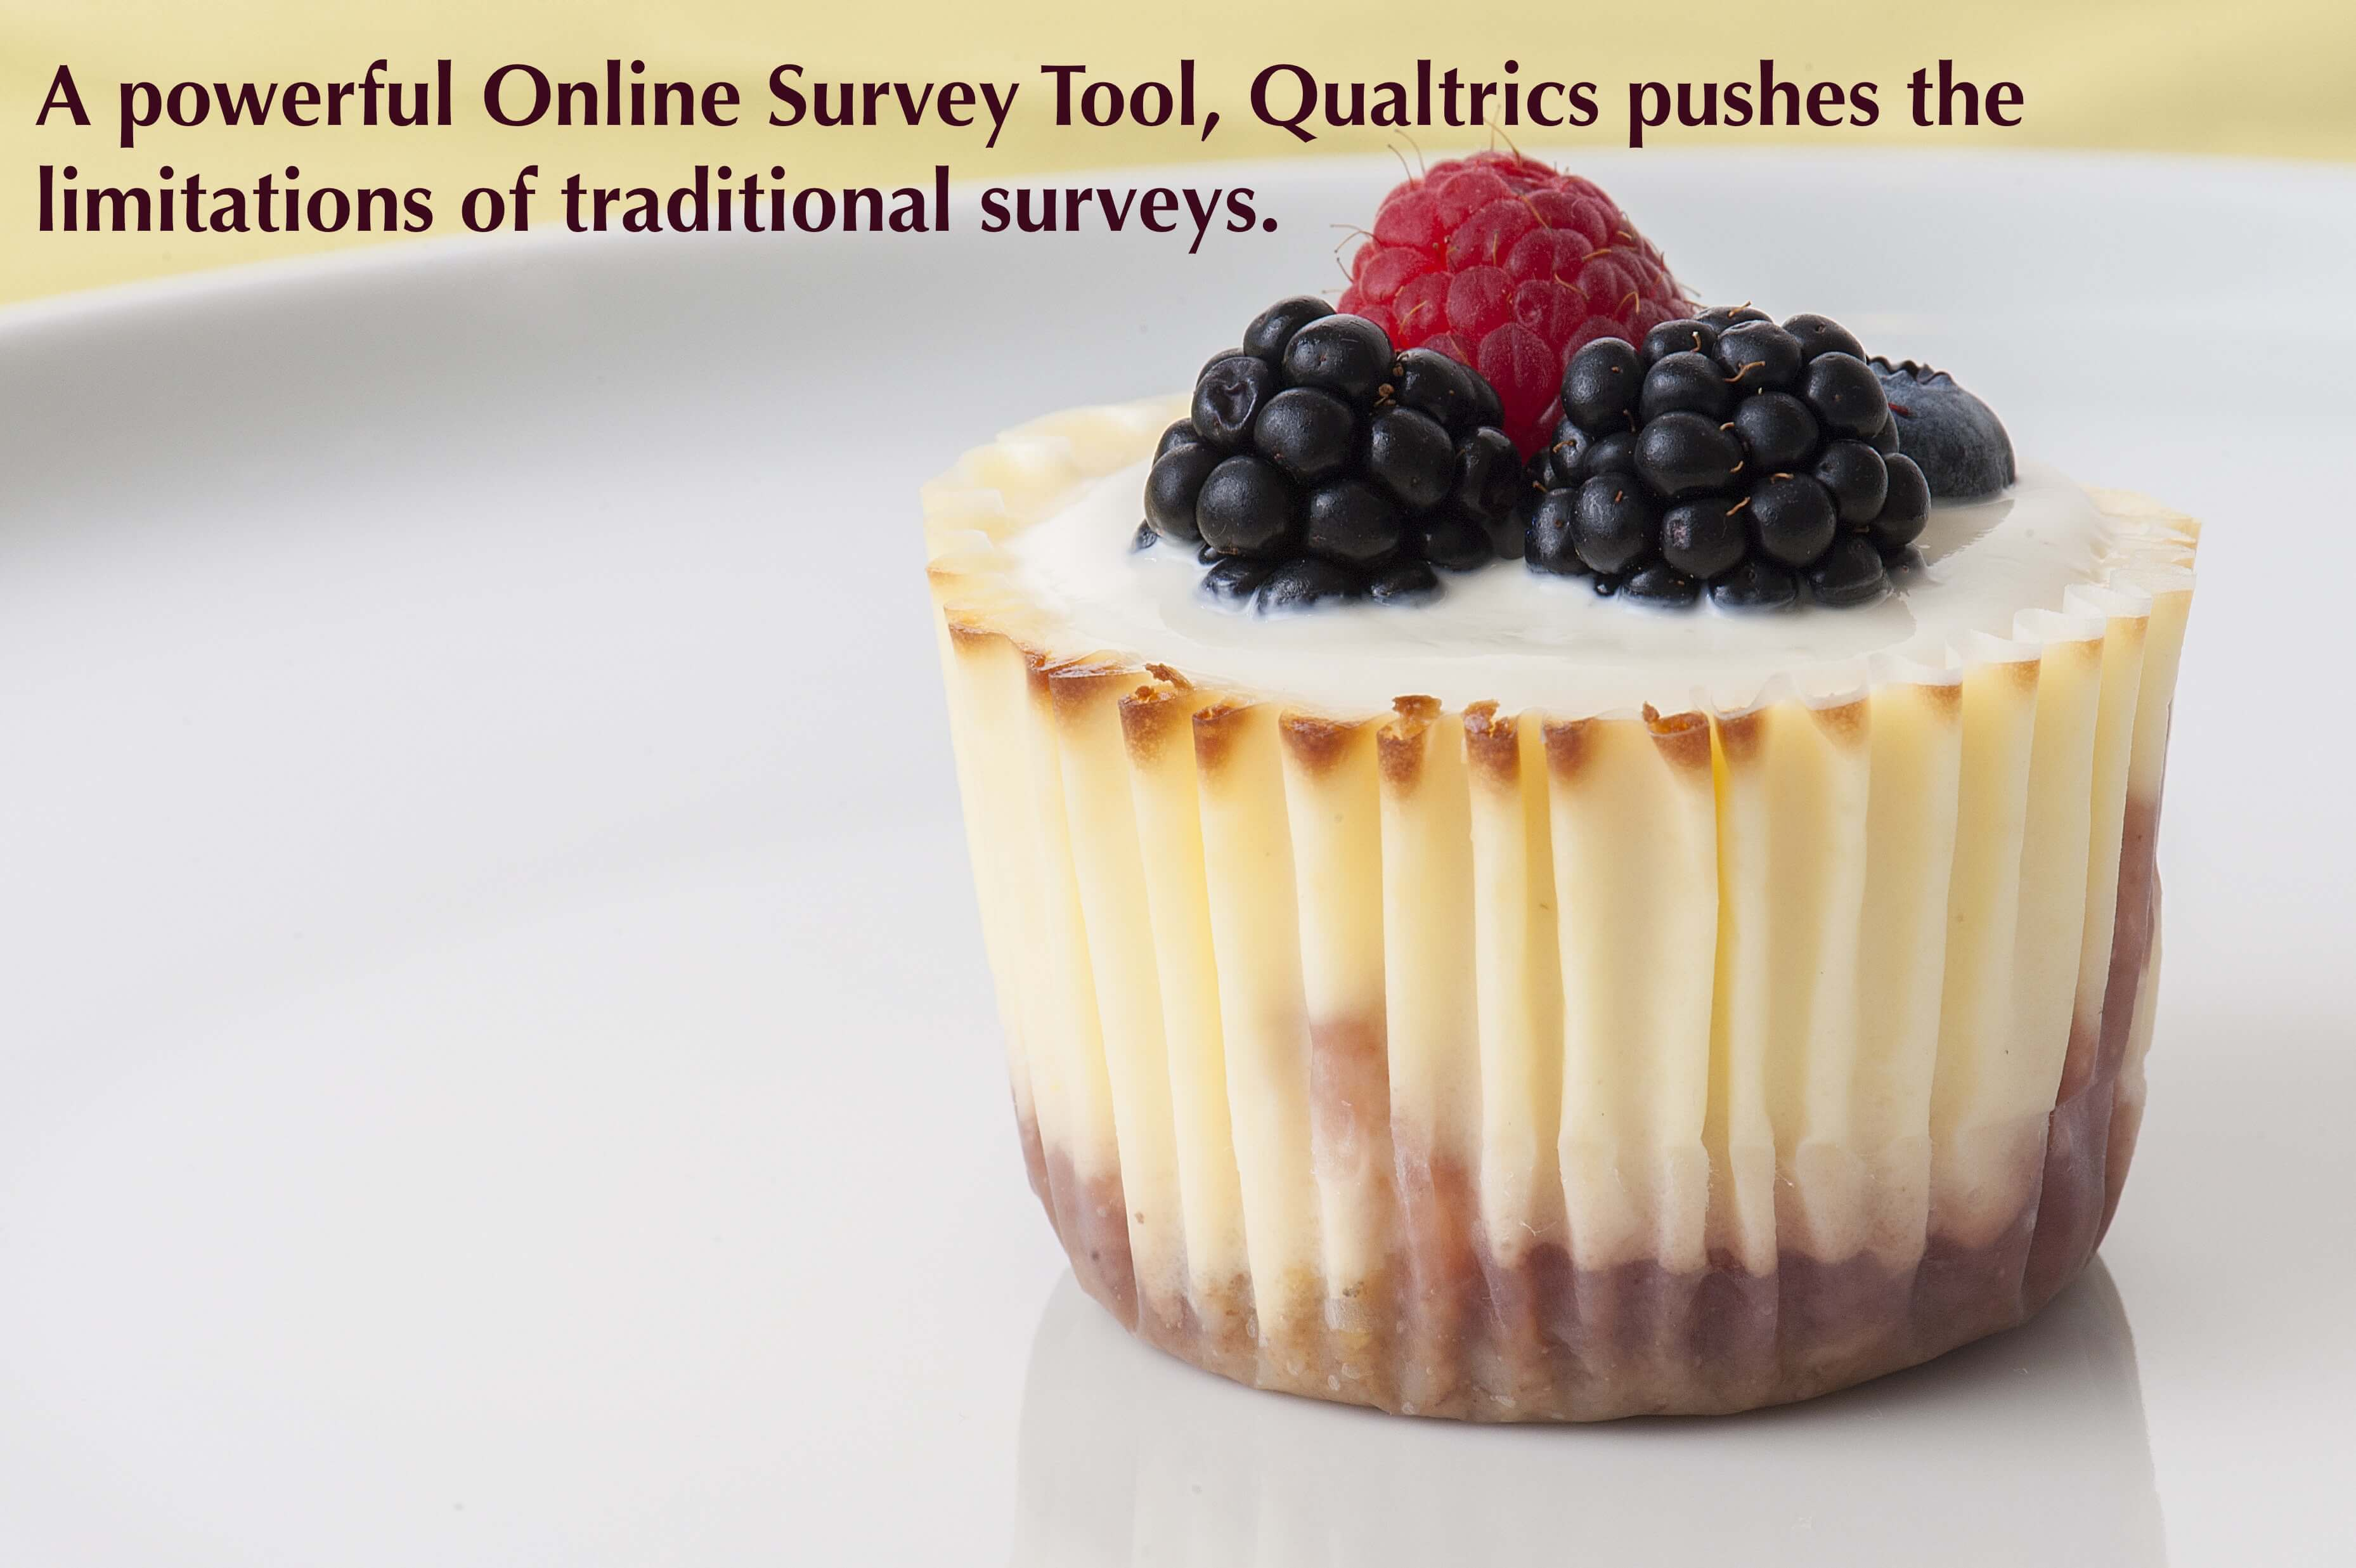 A powerful Online Survey Tool, Qualtrics pushes the limitations of traditional surveys.